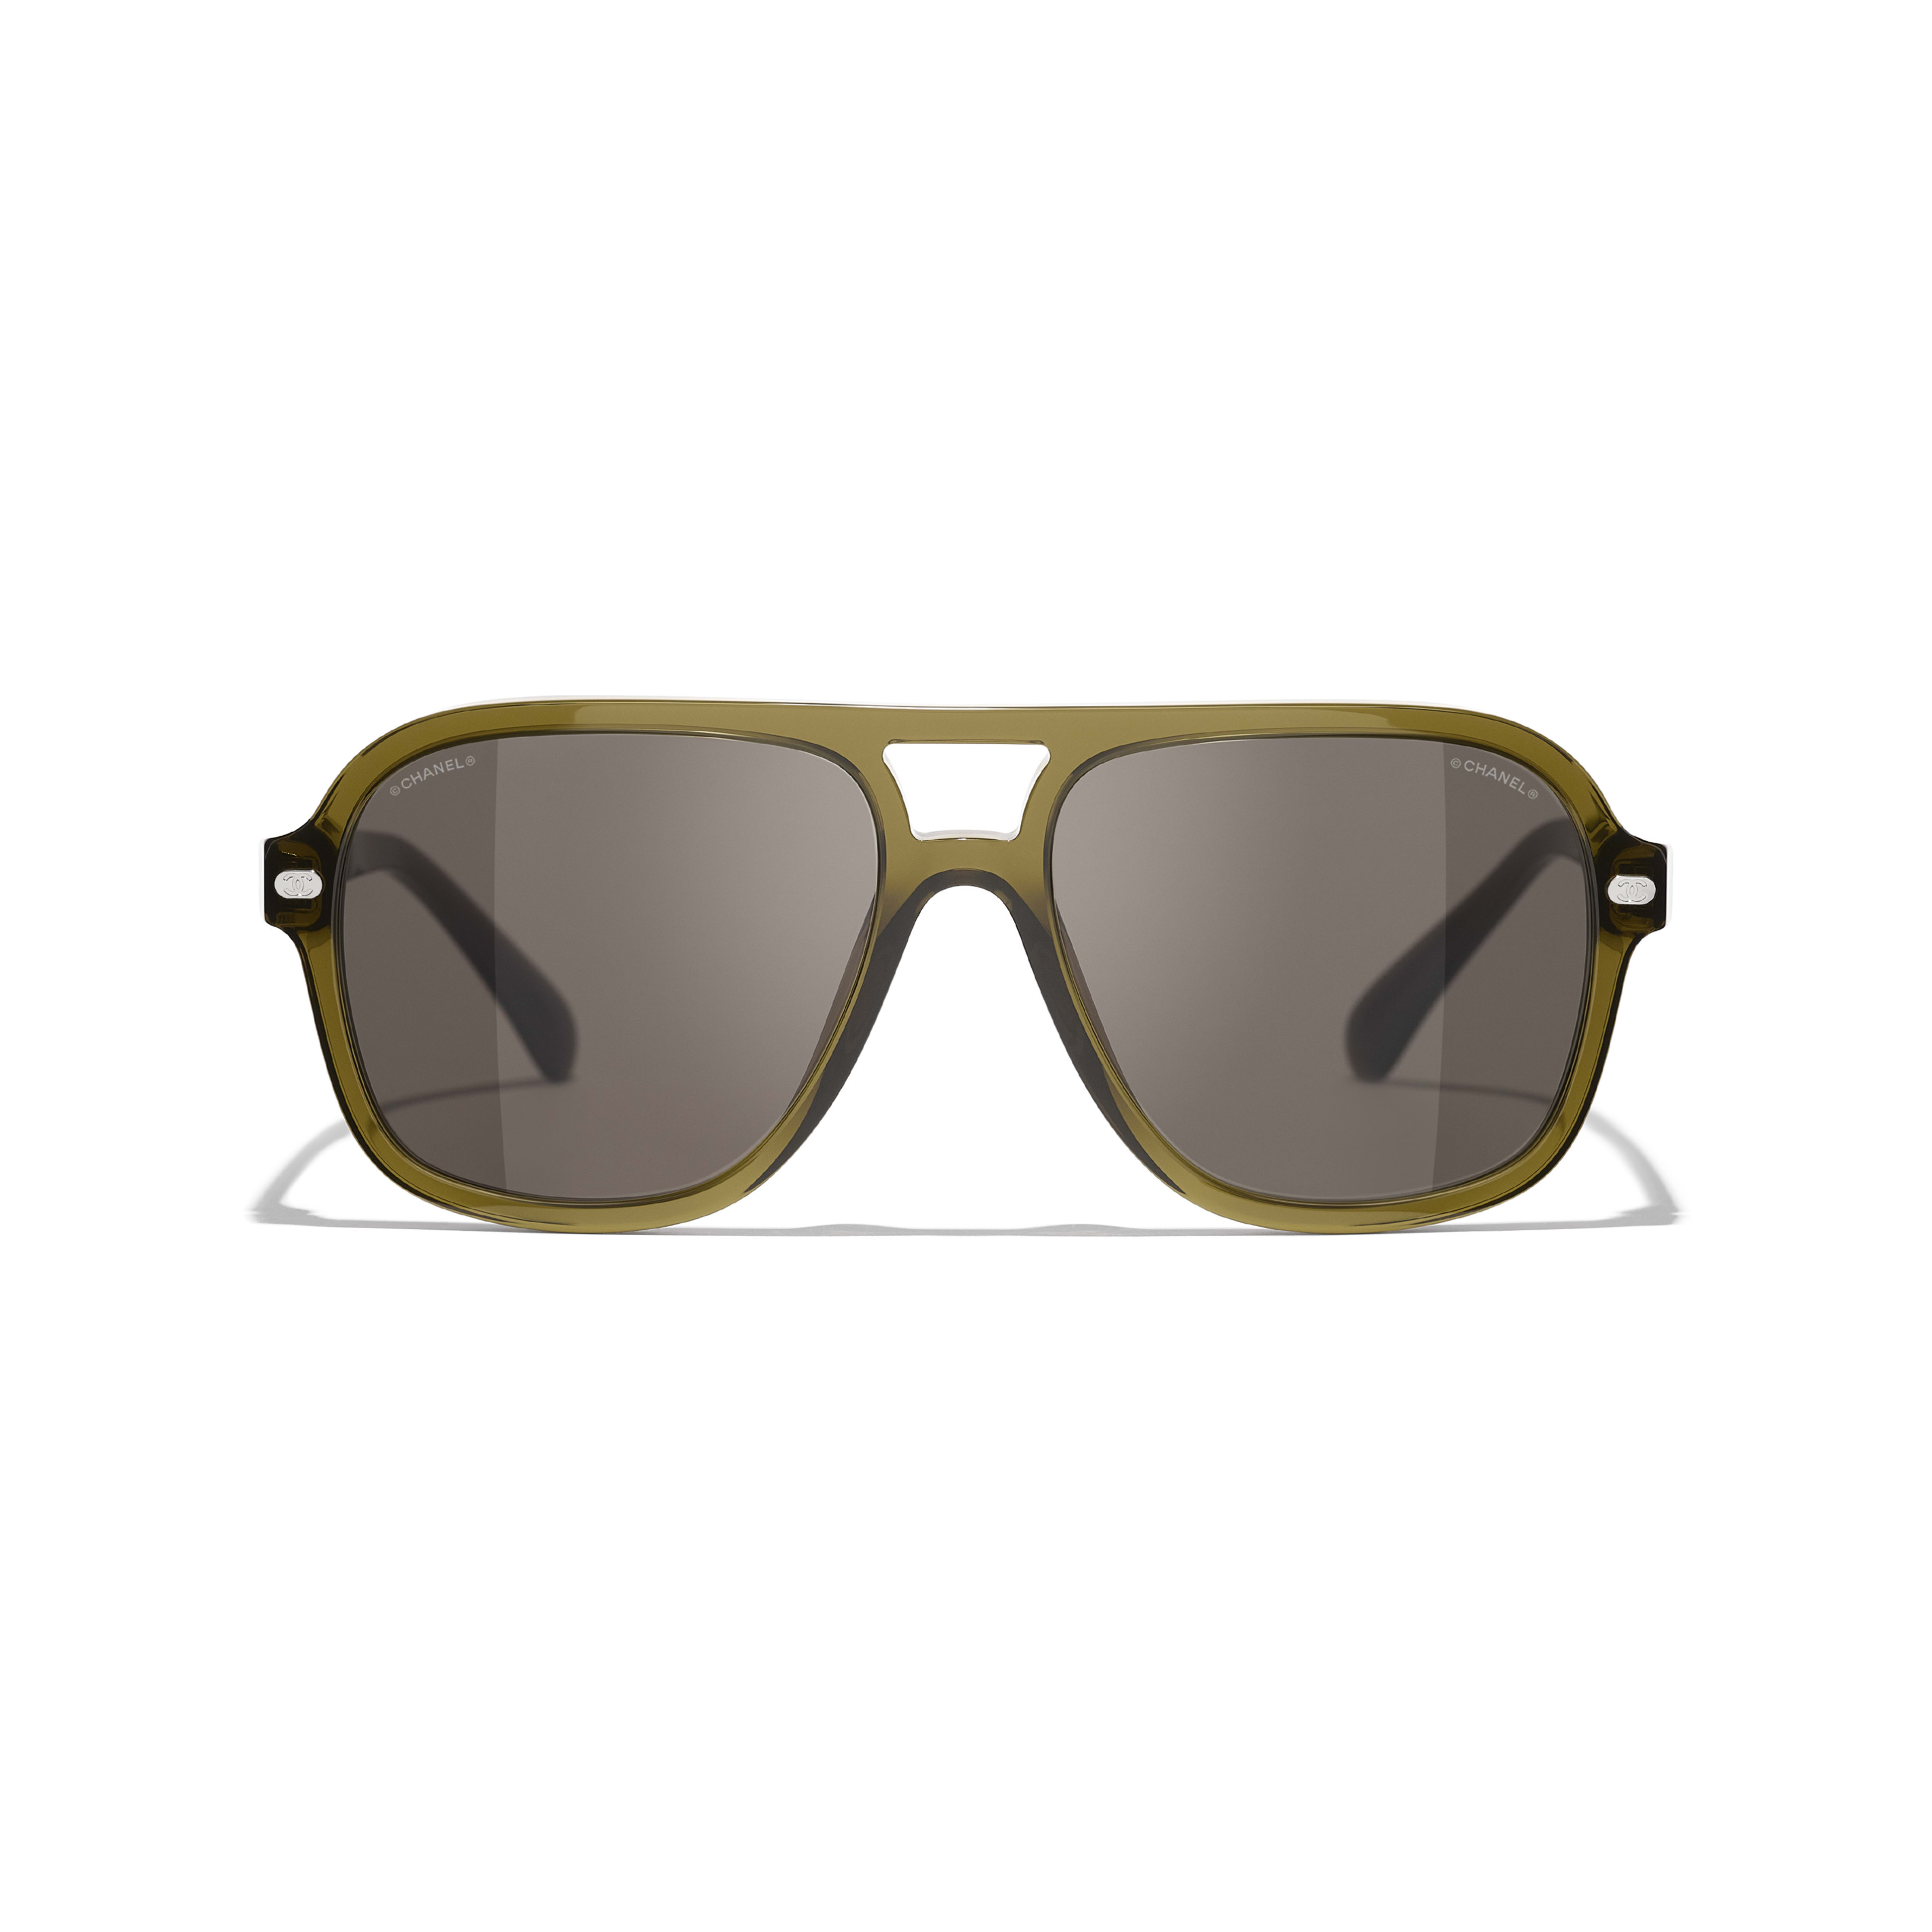 Pilot Sunglasses - Khaki - Acetate & Calfskin - CHANEL - Alternative view - see standard sized version